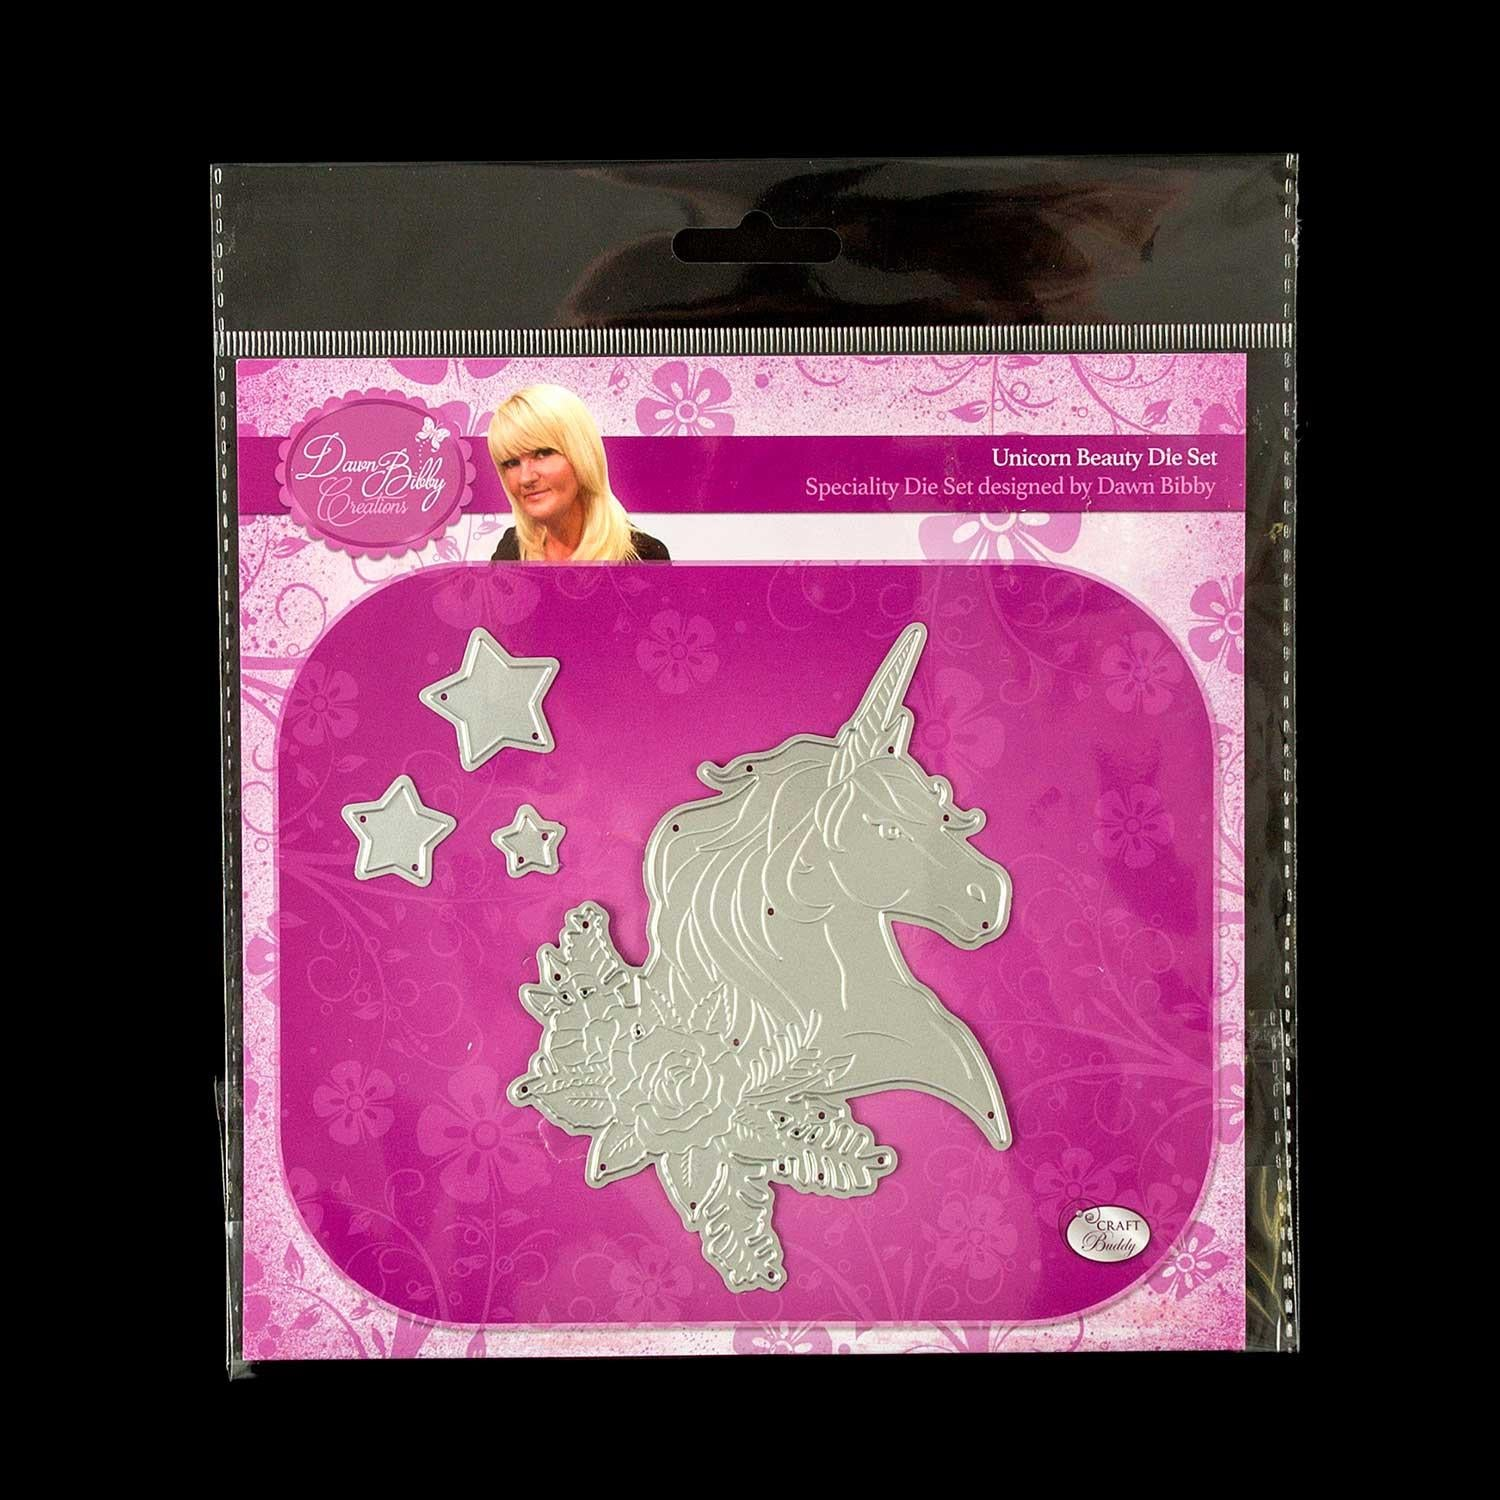 Dawn Bibby Unicorn Beauty Die Set - 4 Dies